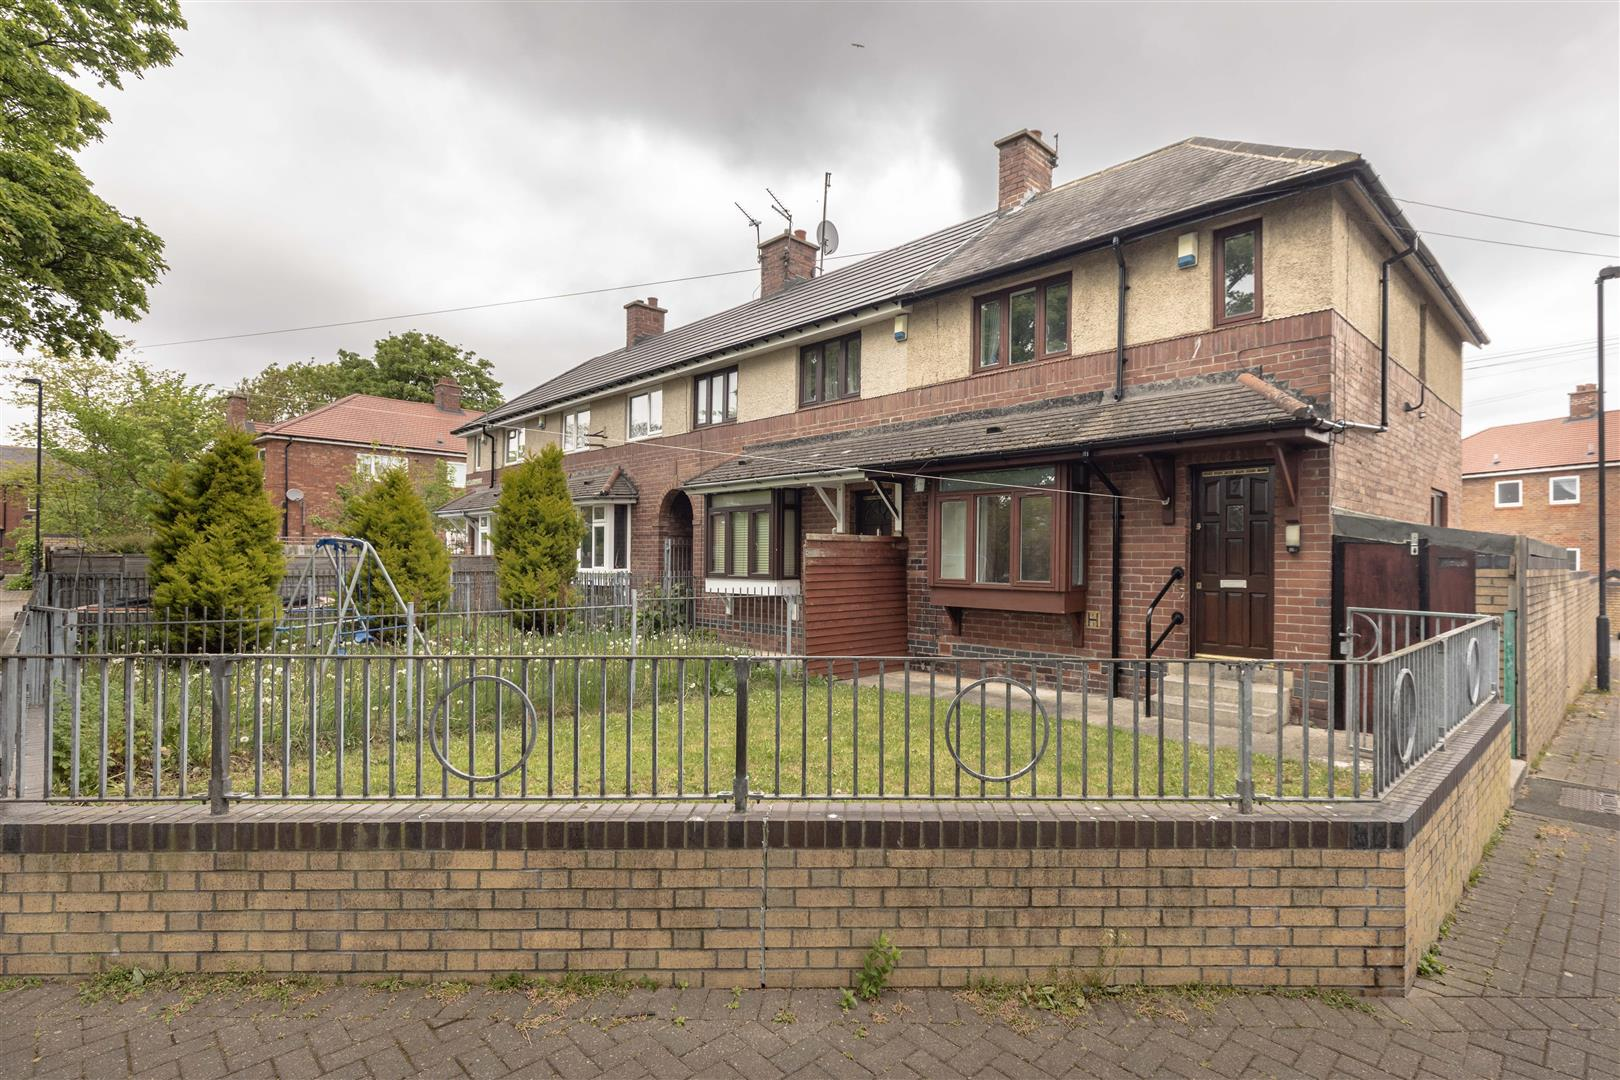 2 bed end of terrace house for sale in North Shields, NE29 7BS  - Property Image 1